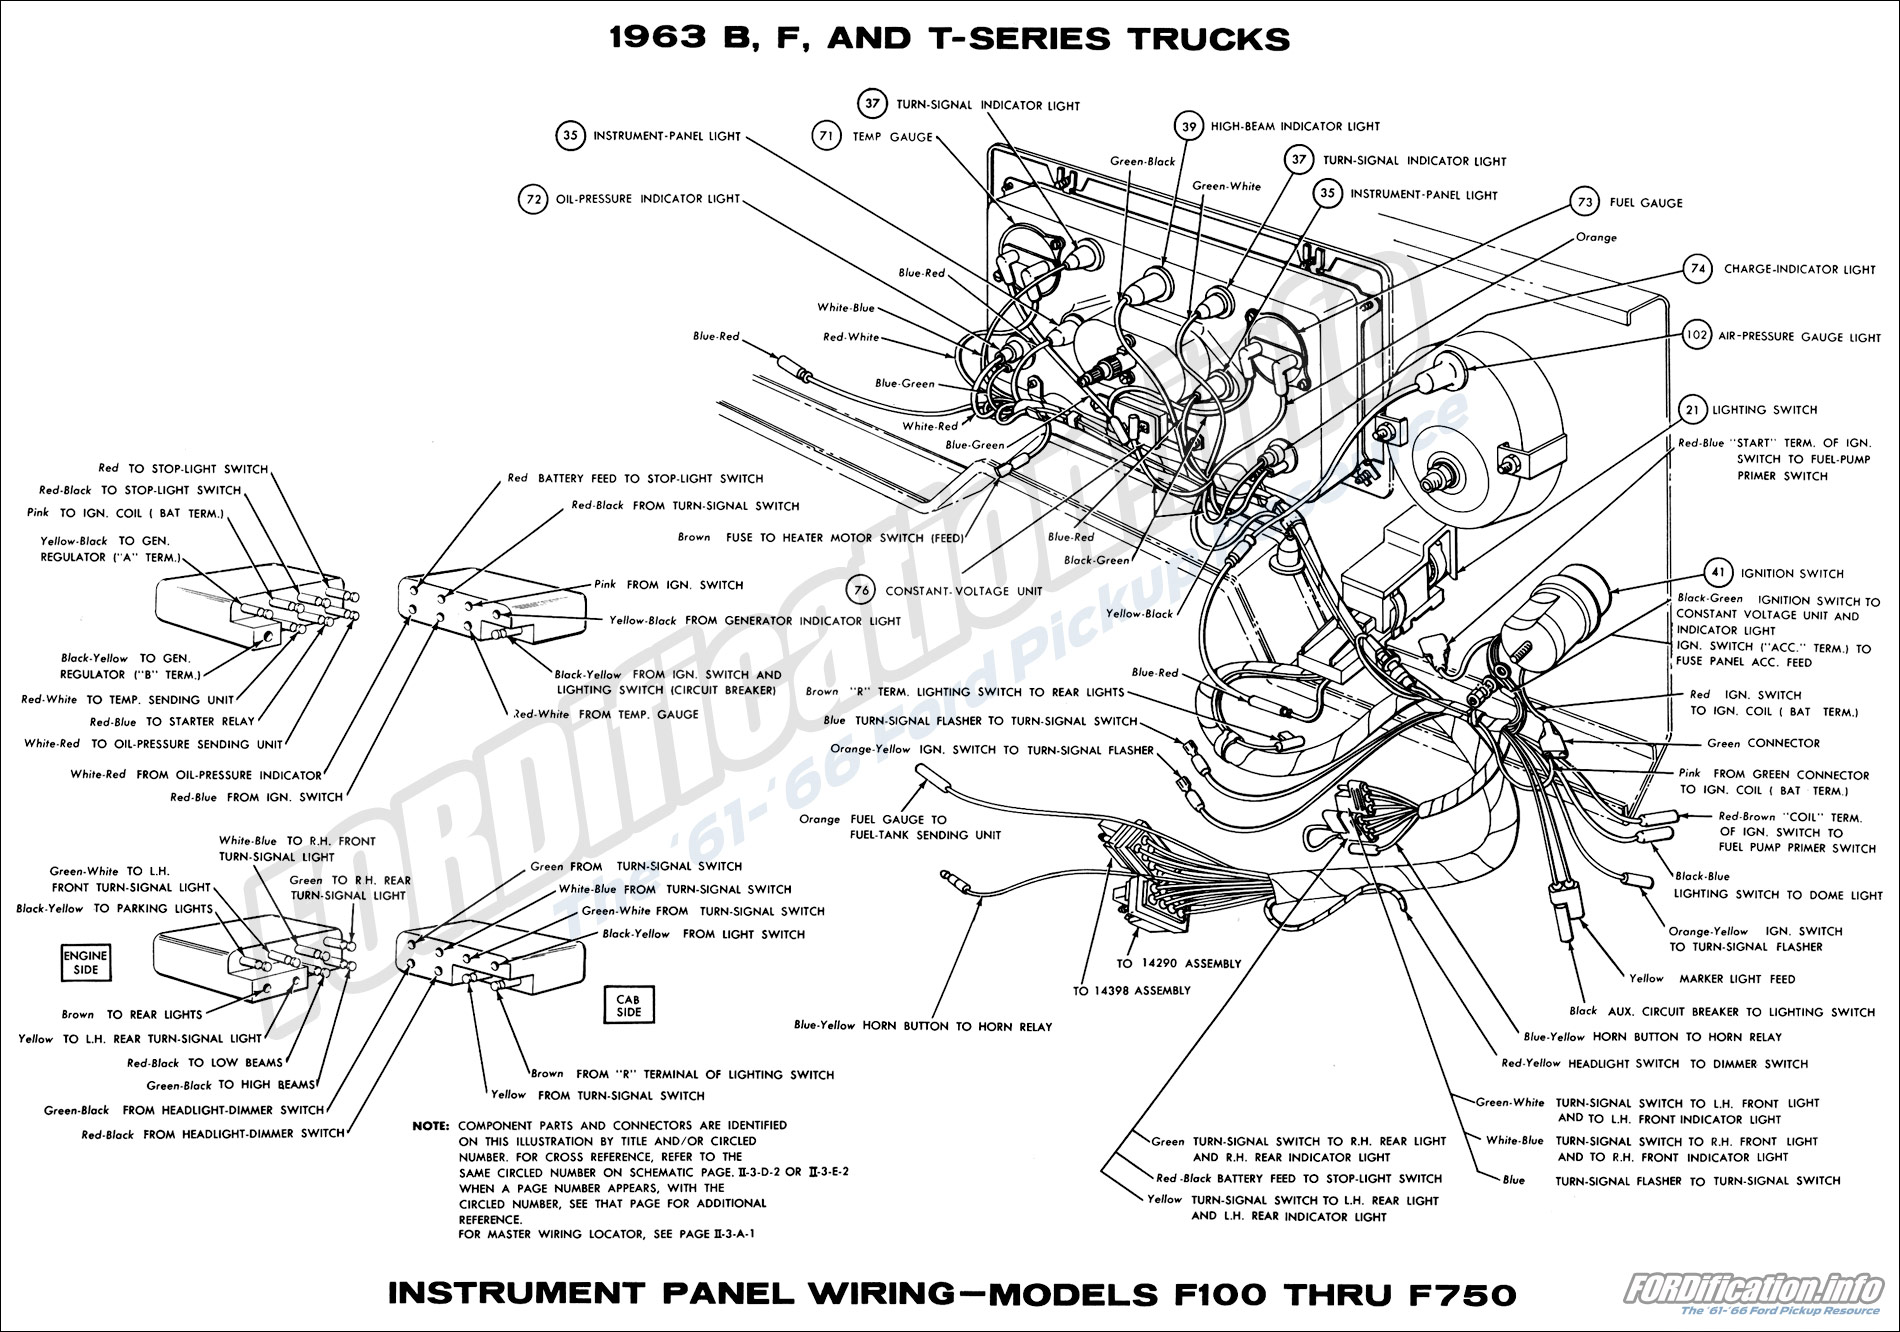 63instrumentpanel 1963 ford truck wiring diagrams fordification info the '61 '66 Ford Truck Wiring Diagrams at aneh.co